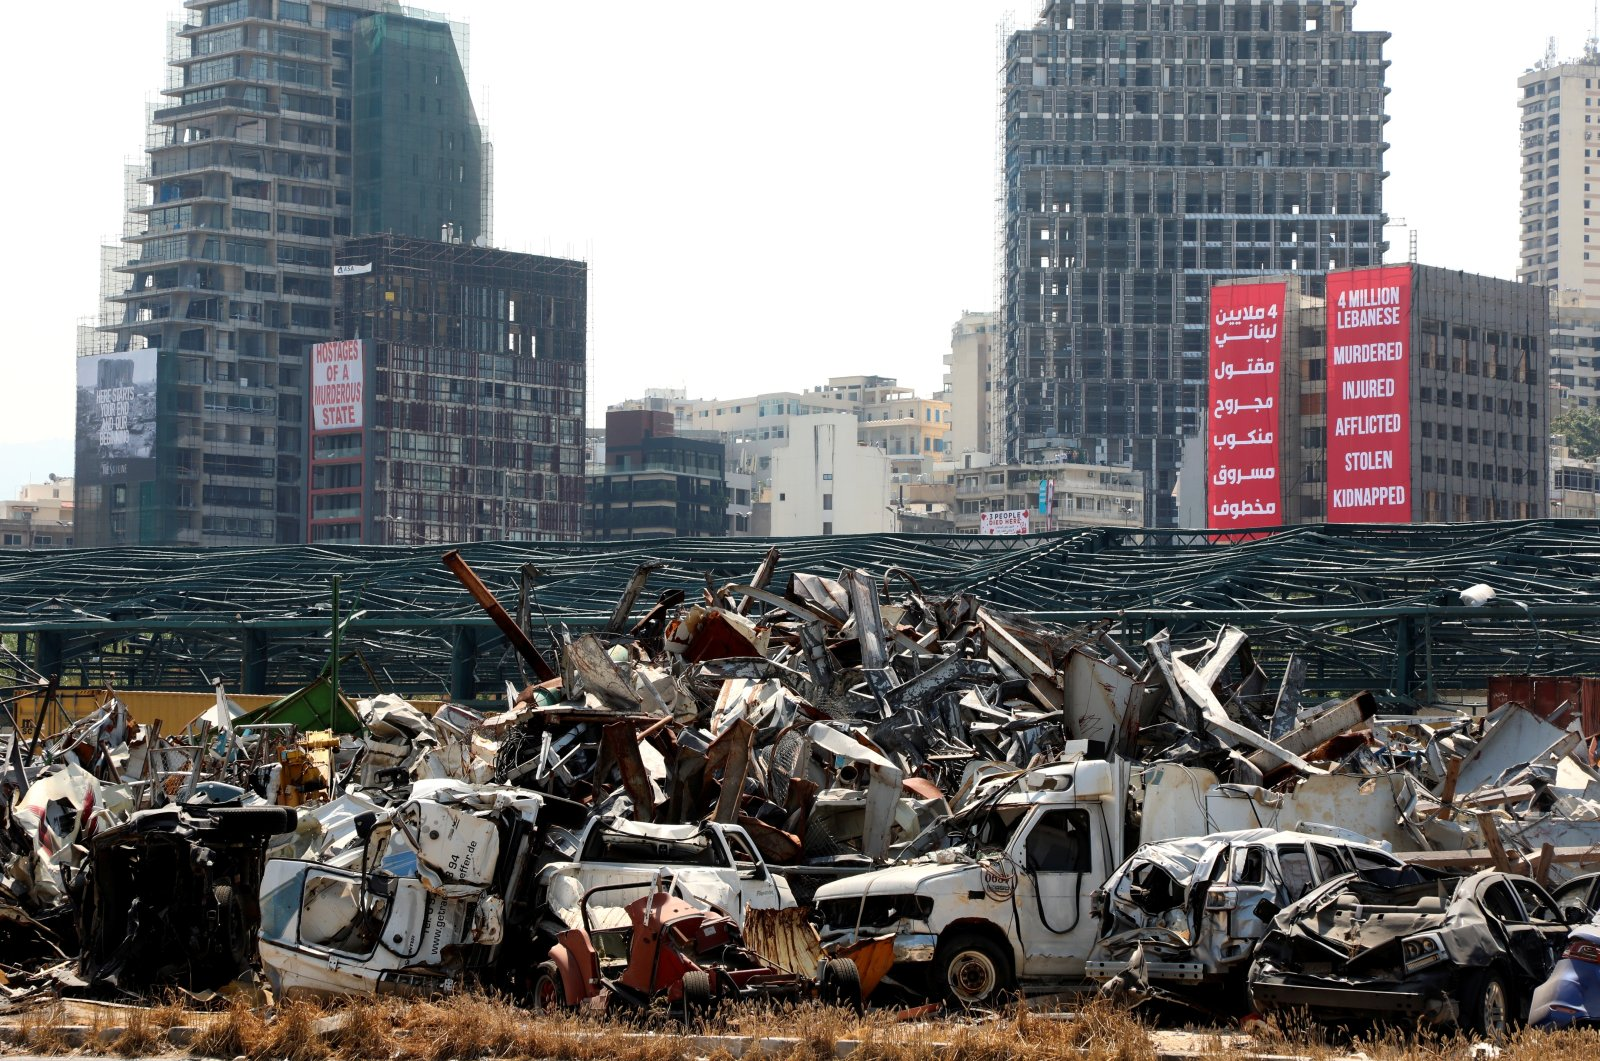 Damaged cars from last year's Beirut port blast as Lebanon marks the one-year anniversary of the explosion, Beirut, Lebanon Aug. 4, 2021. (Reuters Photo)